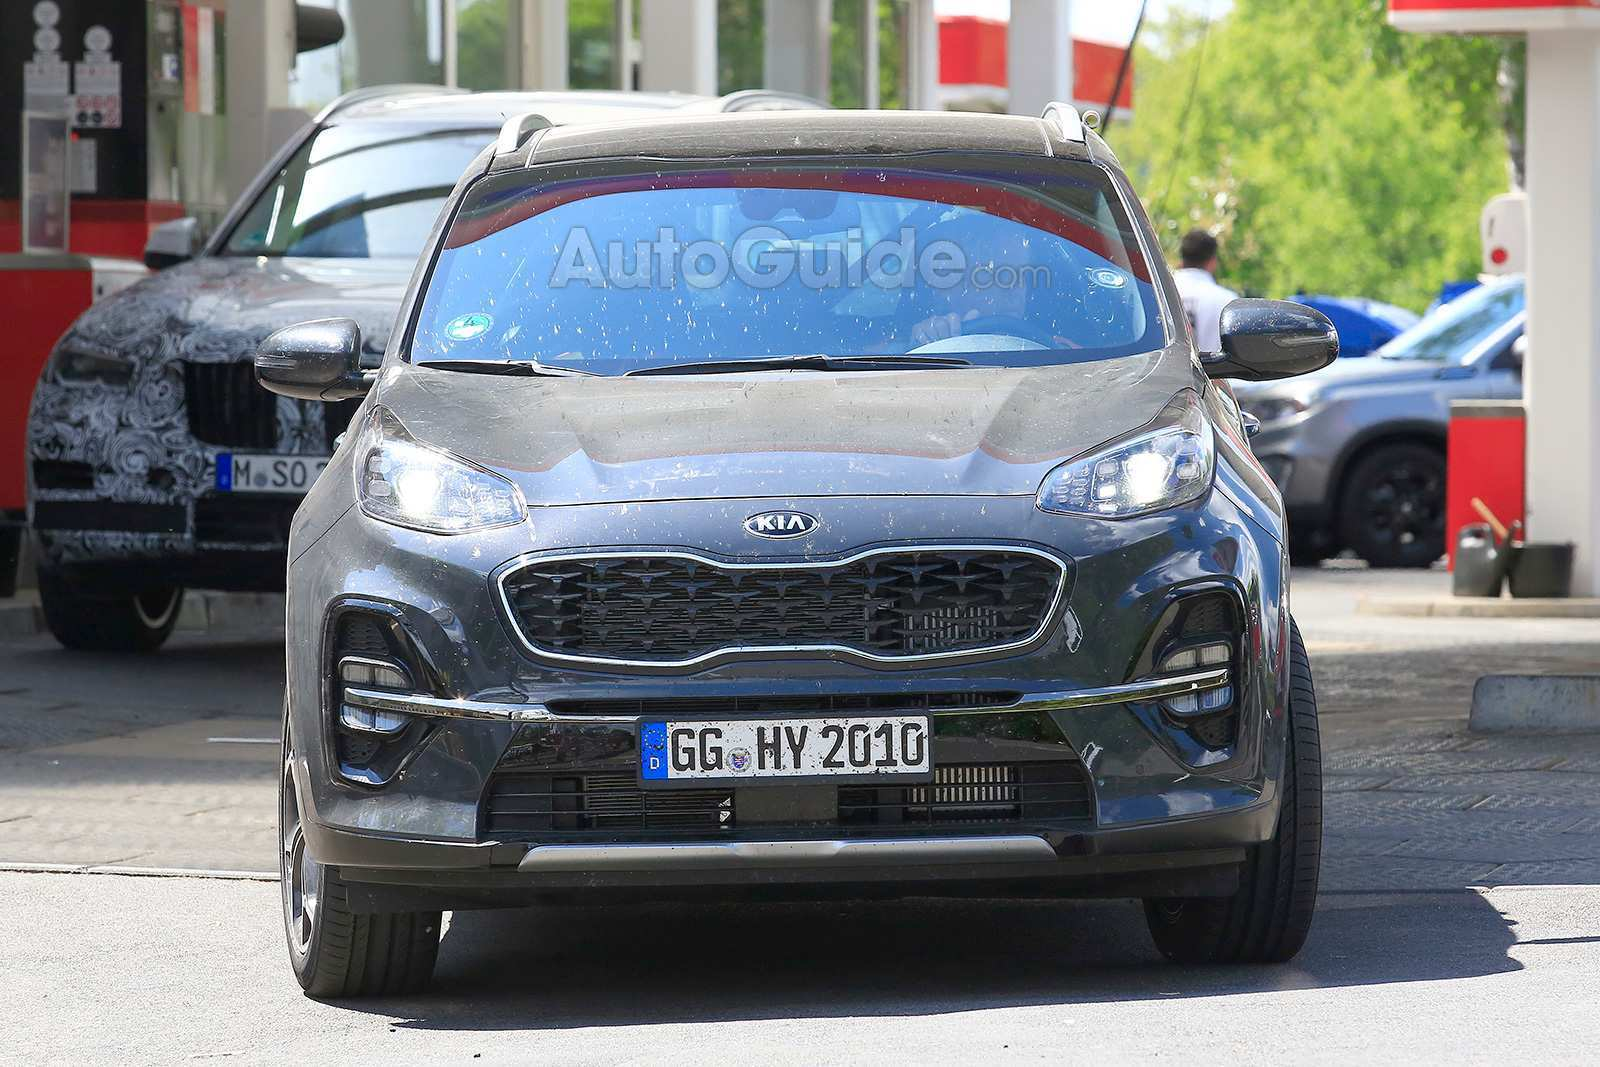 39 All New 2019 KIA SportageSpy Shots Images